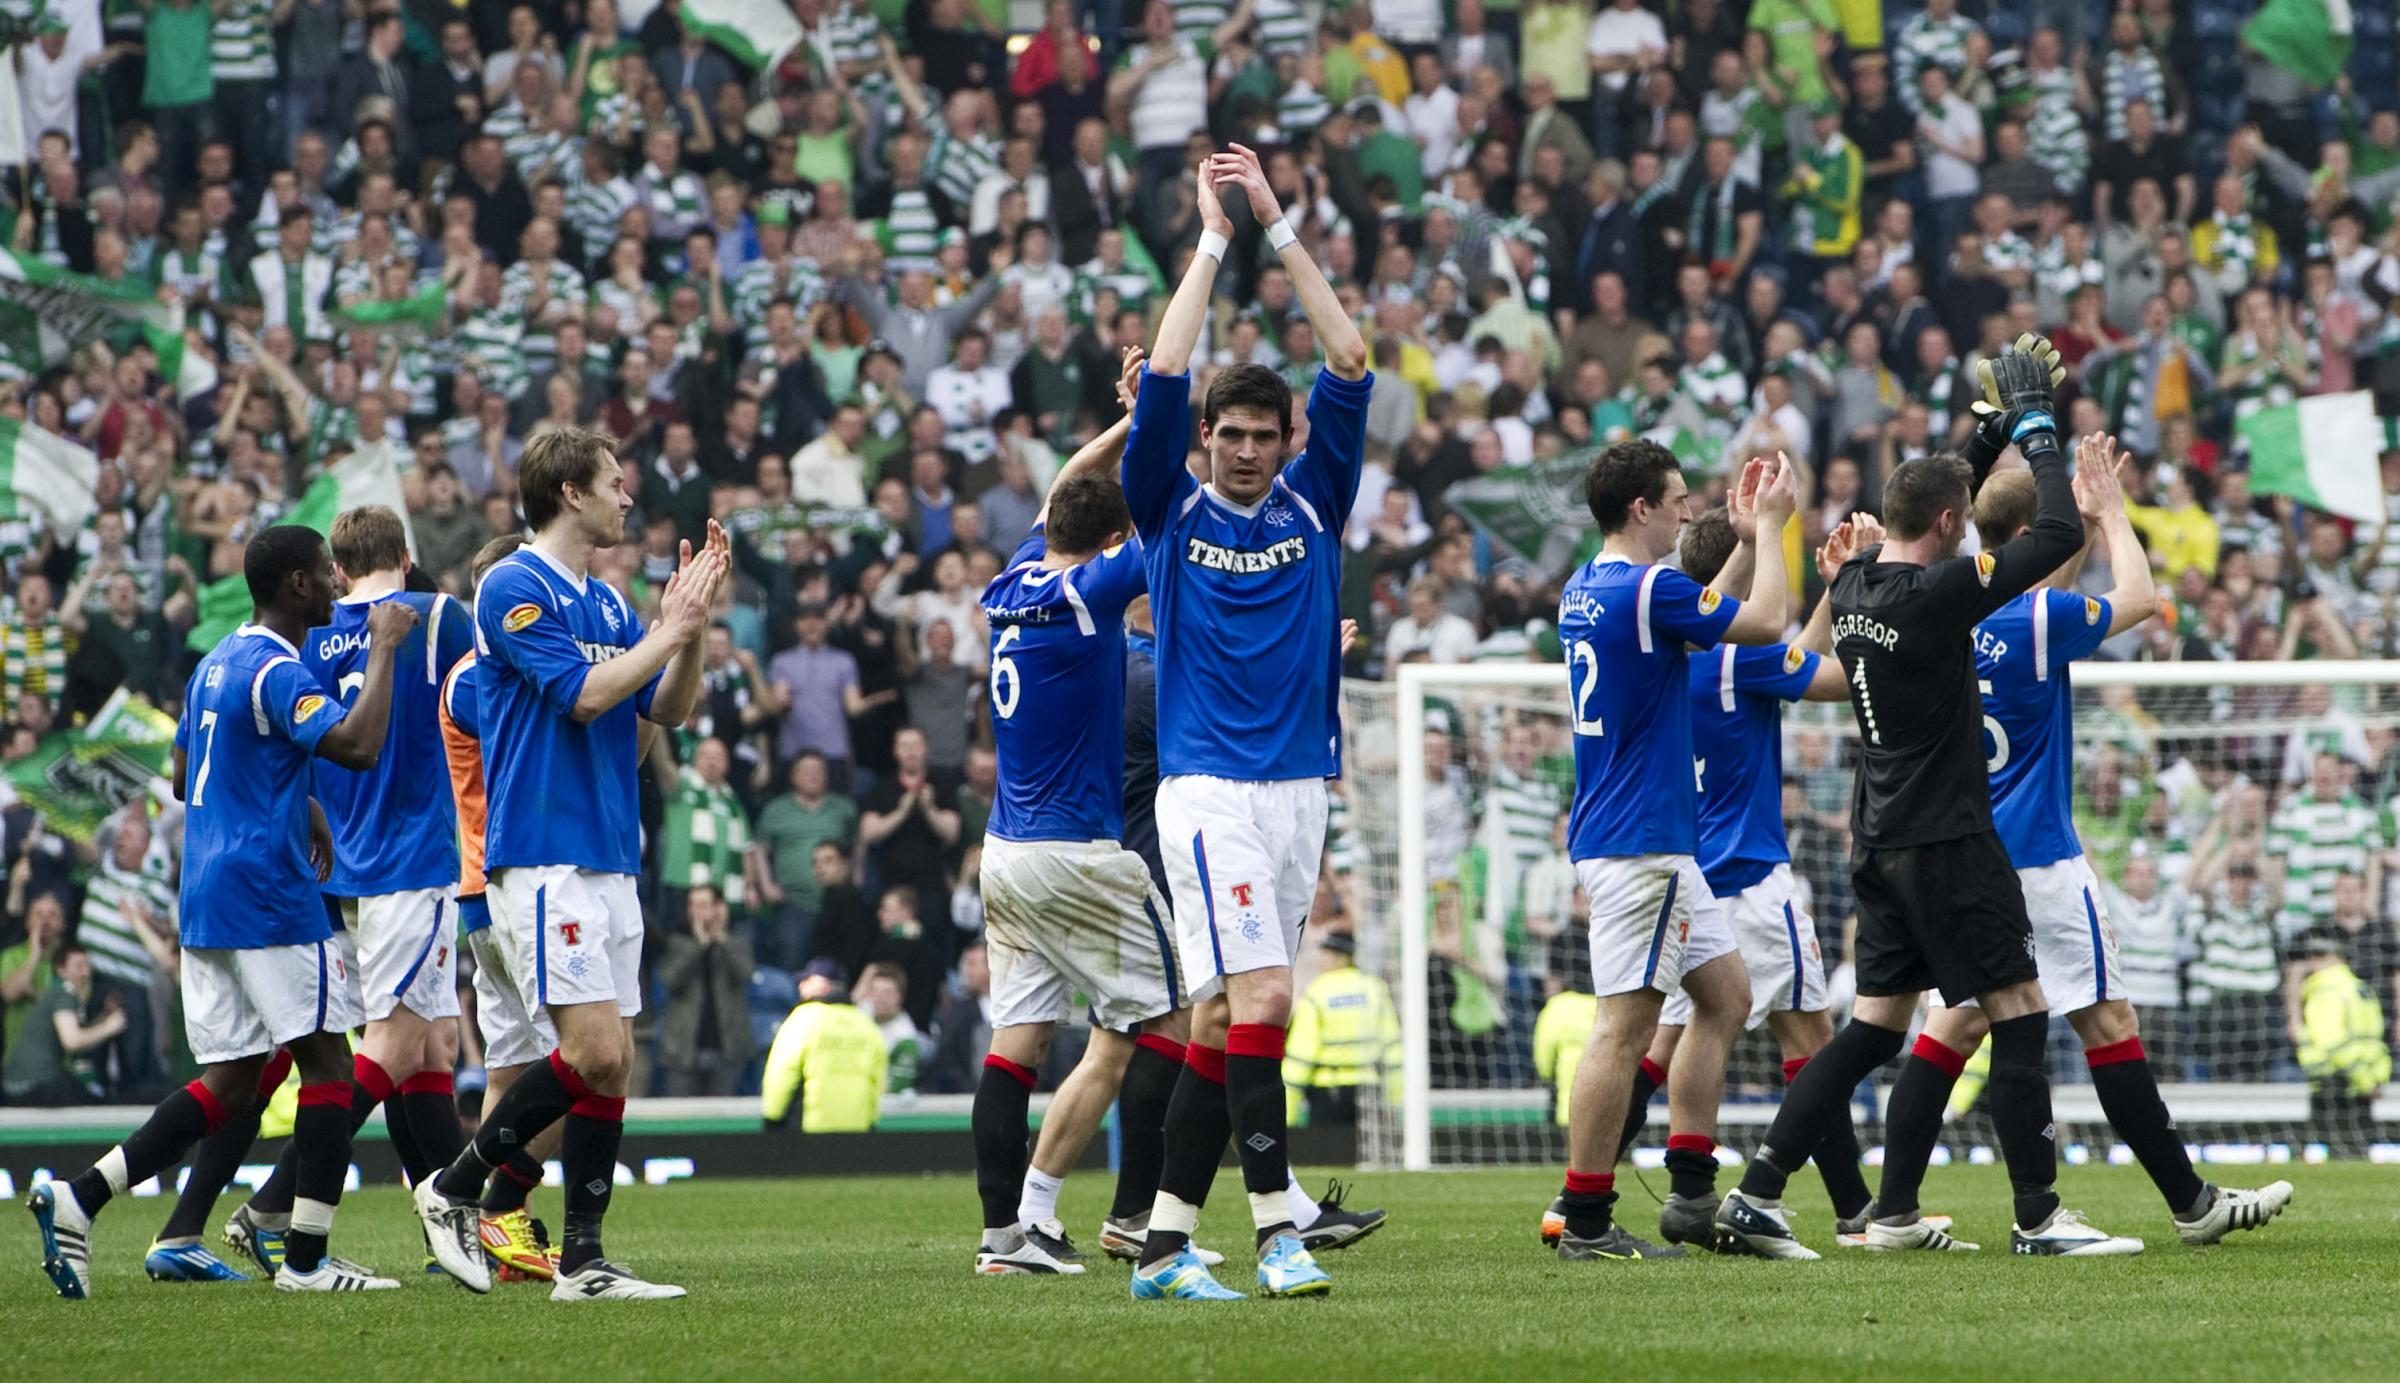 Rangers denied Celtic the chance to confirm the league title at Ibrox back in 2012